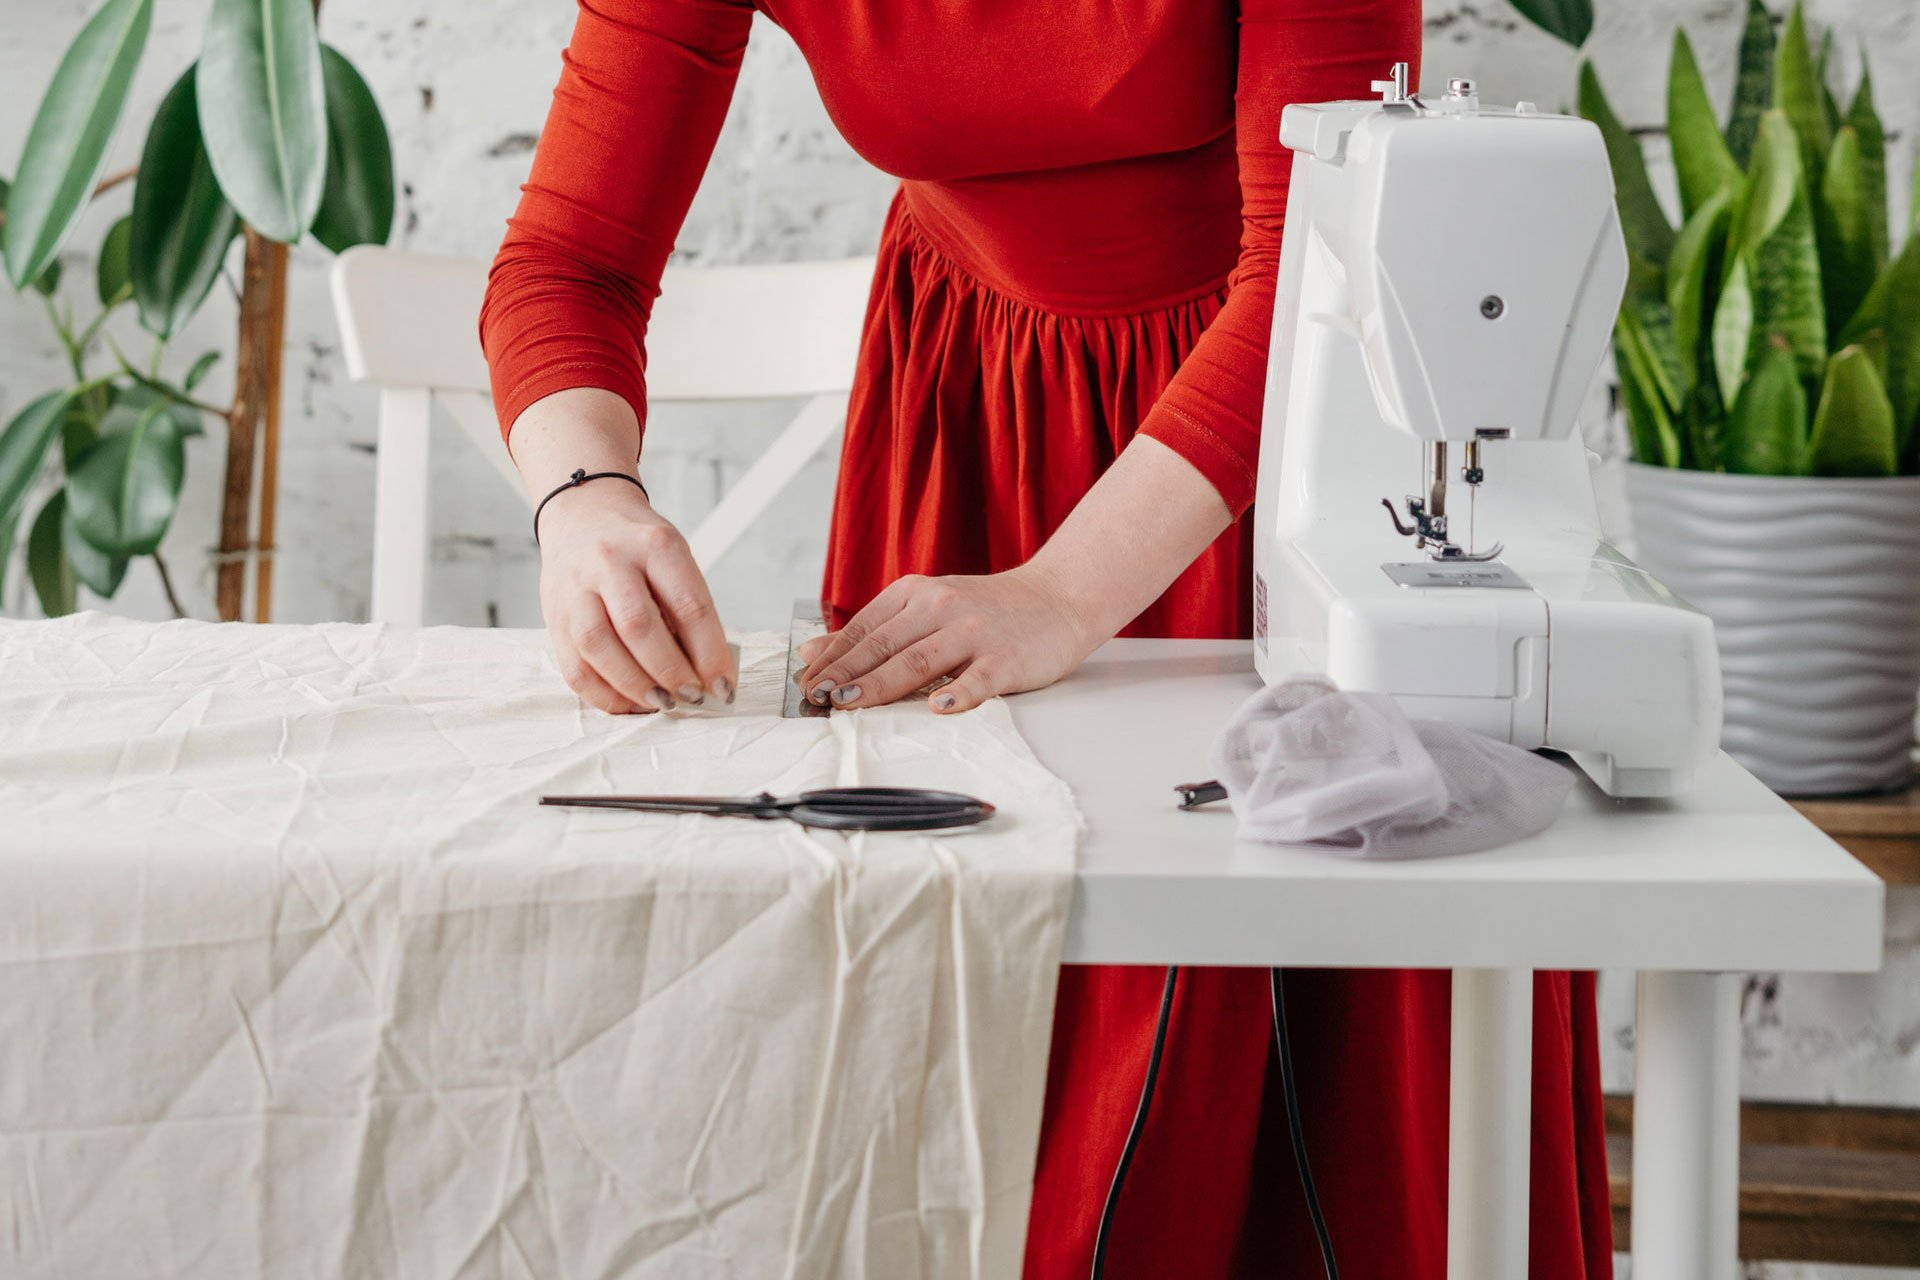 Woman is measuring textile to cut